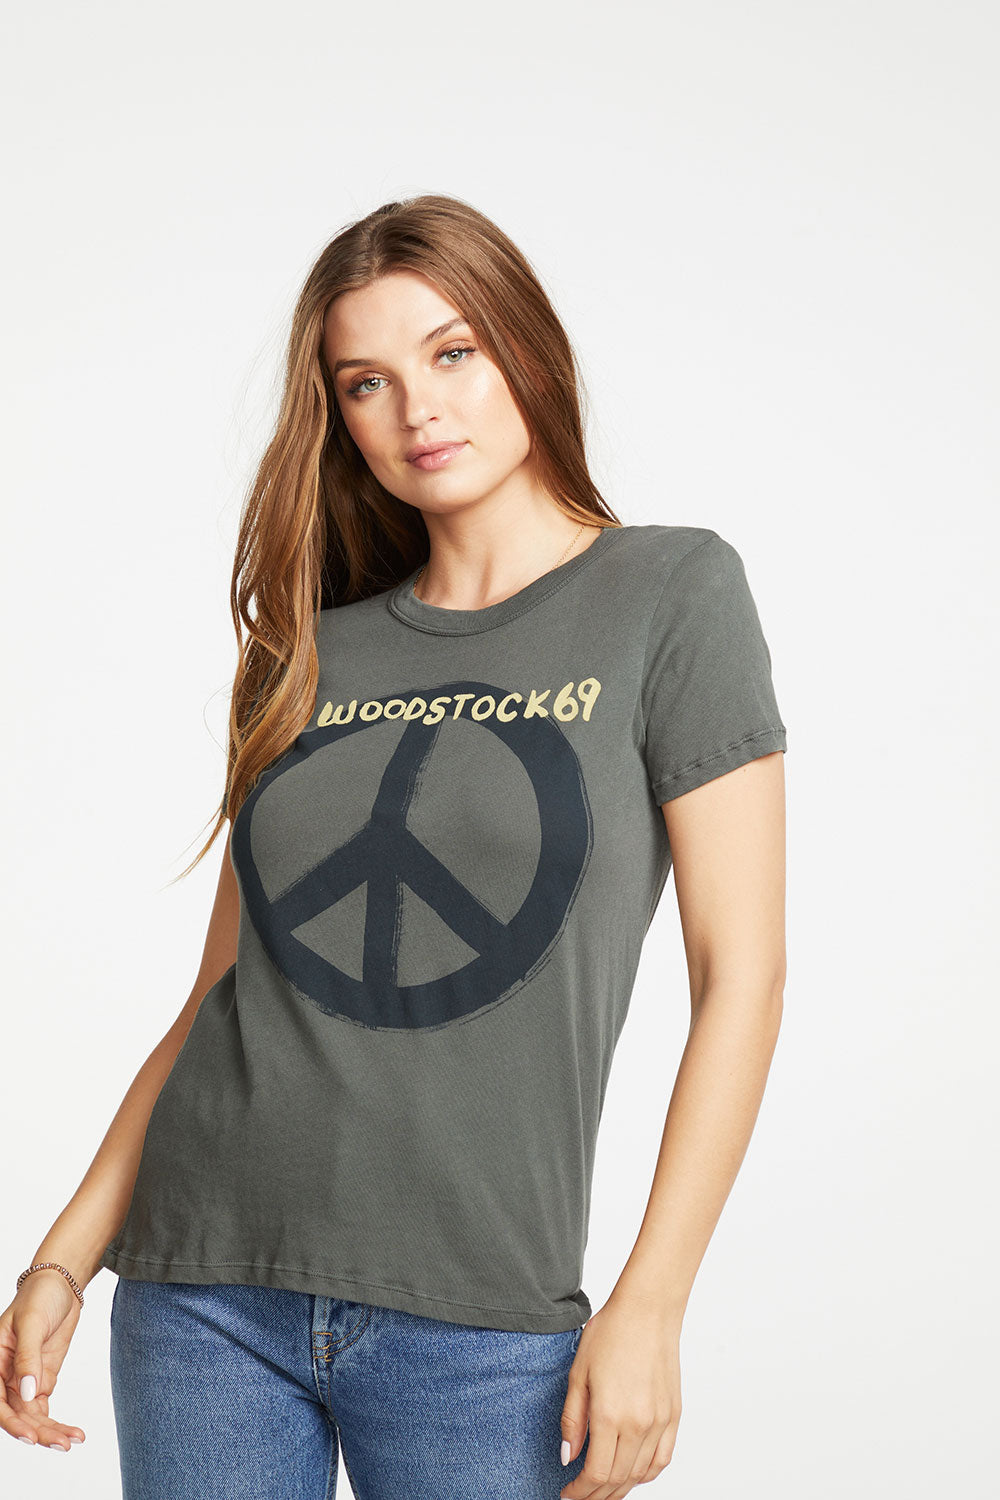 Woodstock - Peace Sign WOMENS - chaserbrand